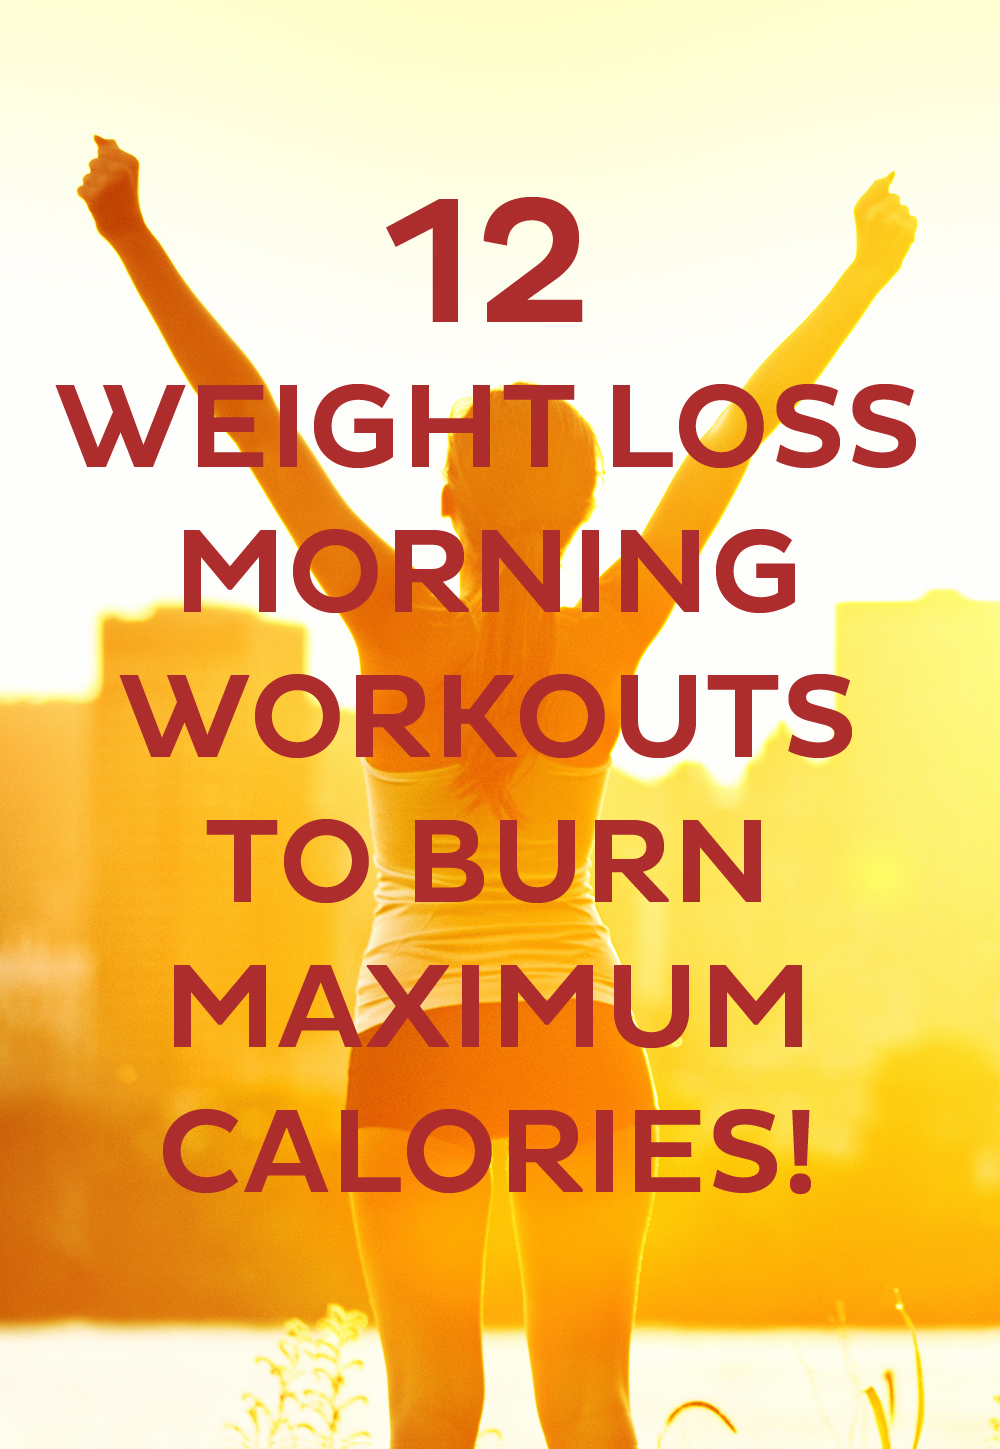 12 Weight Loss Morning Workouts To Burn Maximum Calories